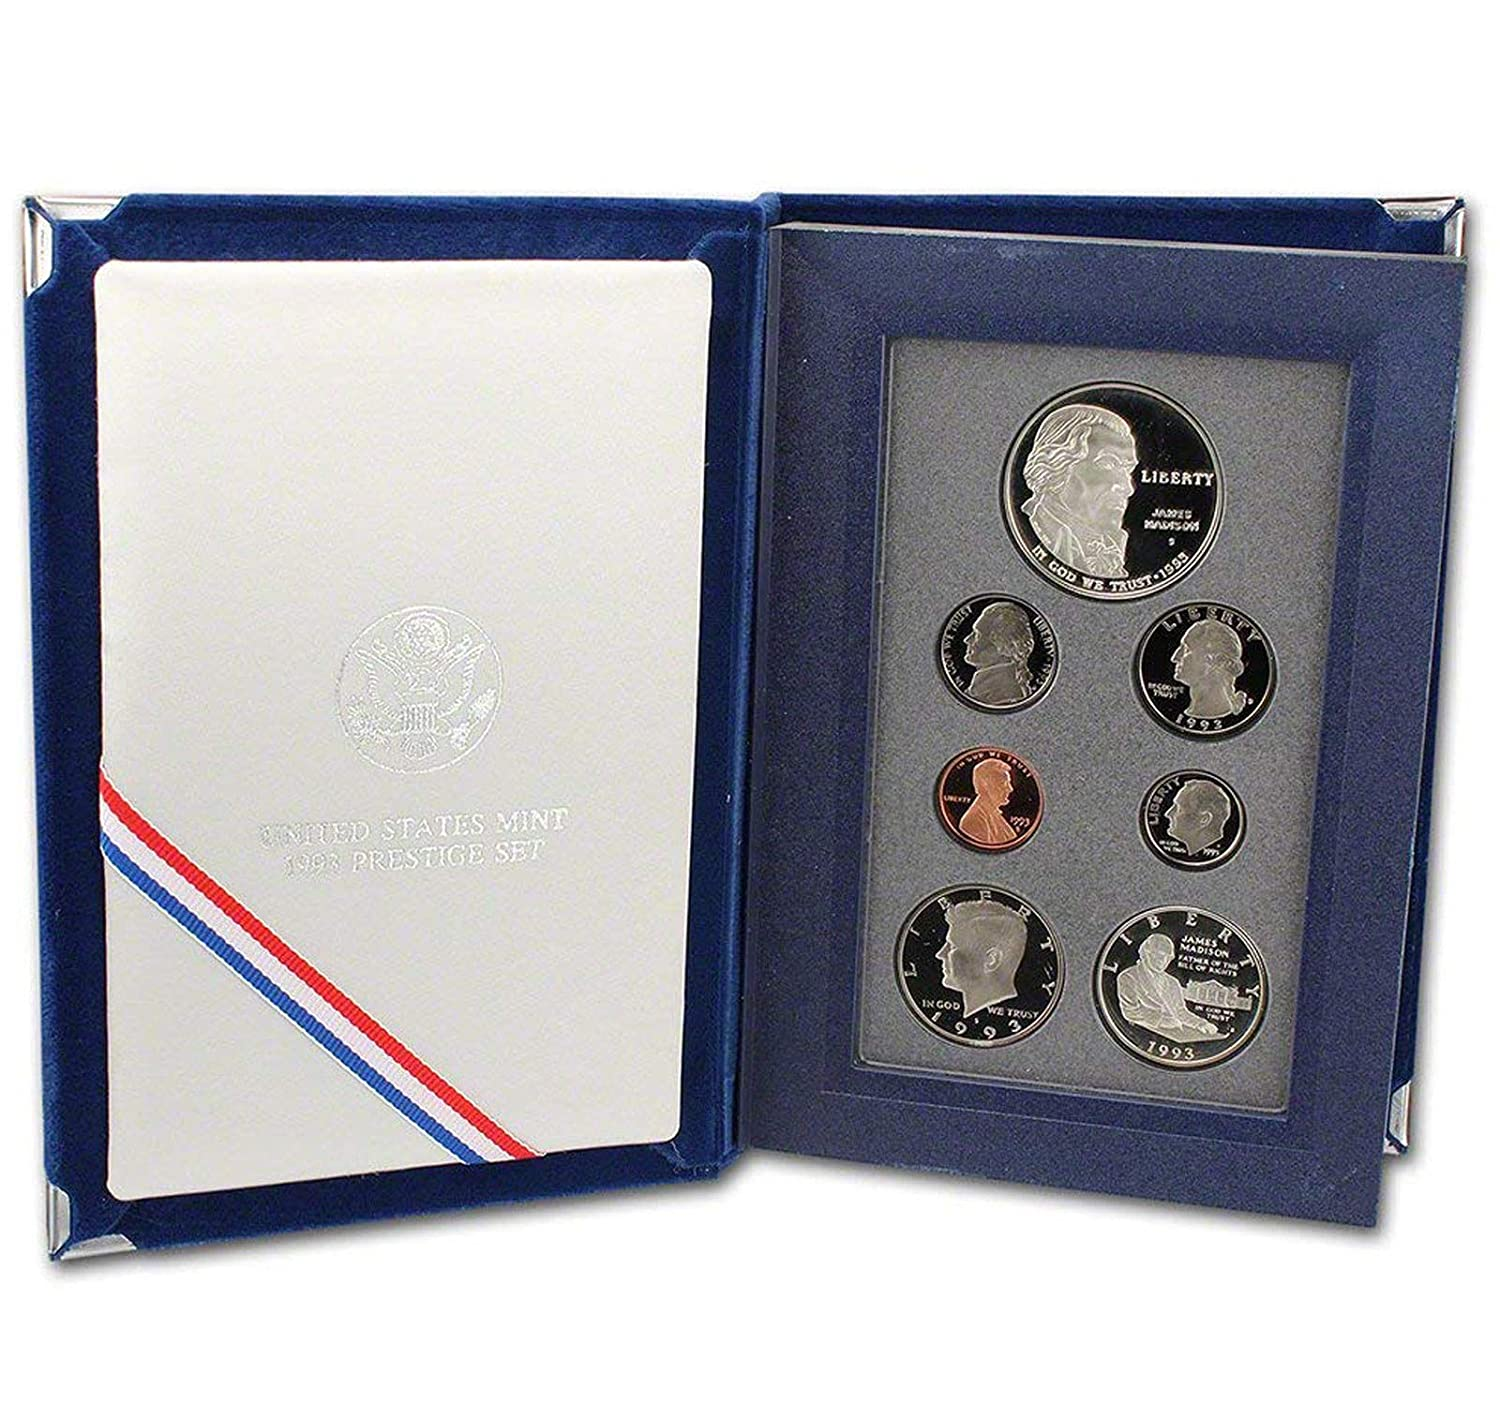 1993 Bill of Rights Prestige Proof Coin Set United States Mint